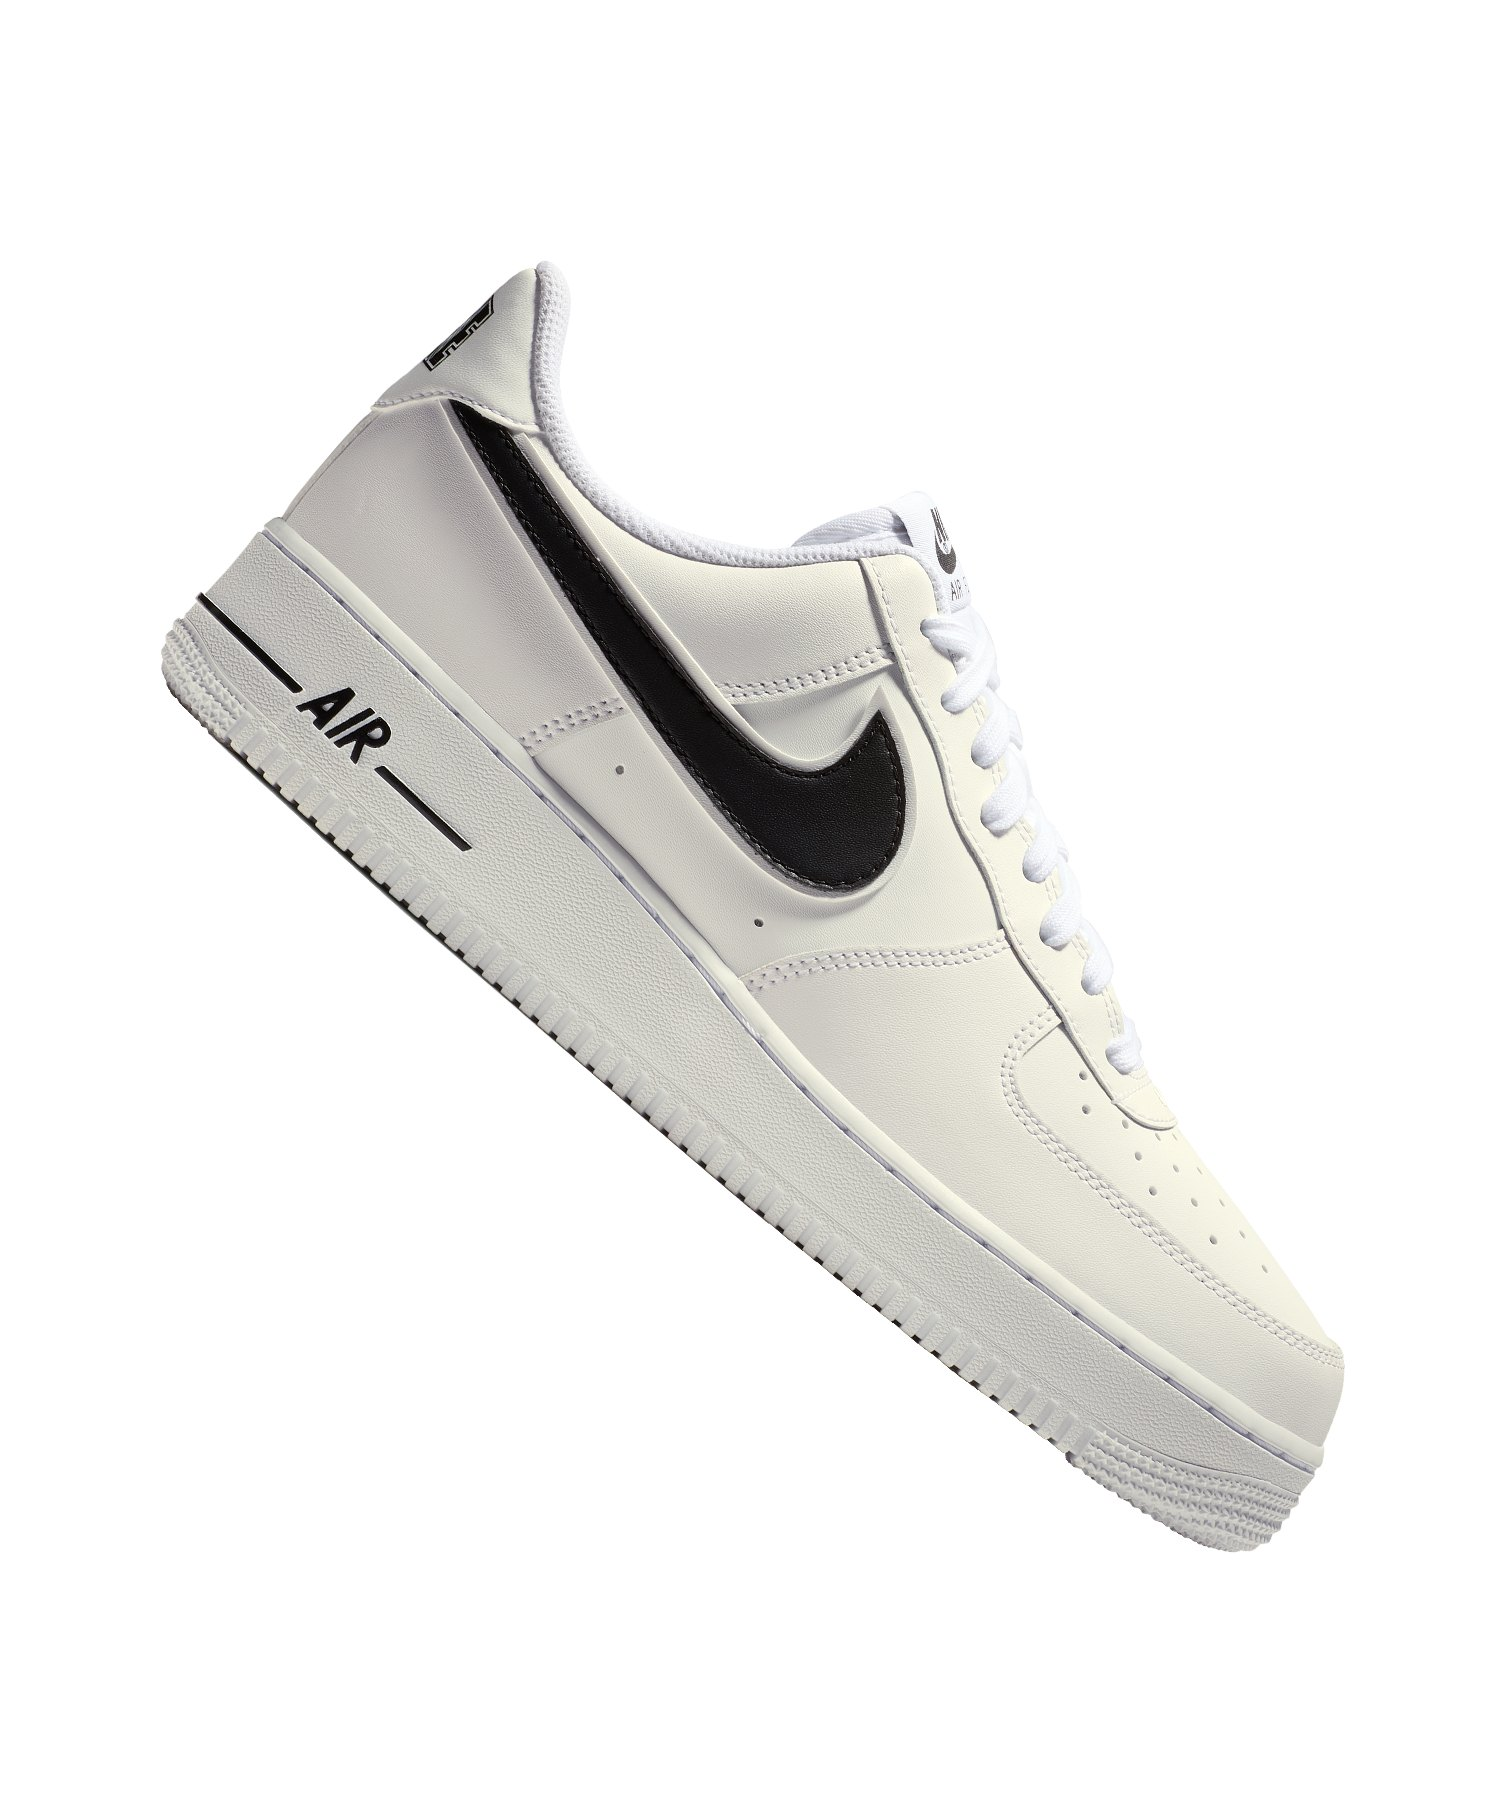 new style cecc3 71be9 ... nike air force 1 07 sneaker weiss schwarz f101 weiss